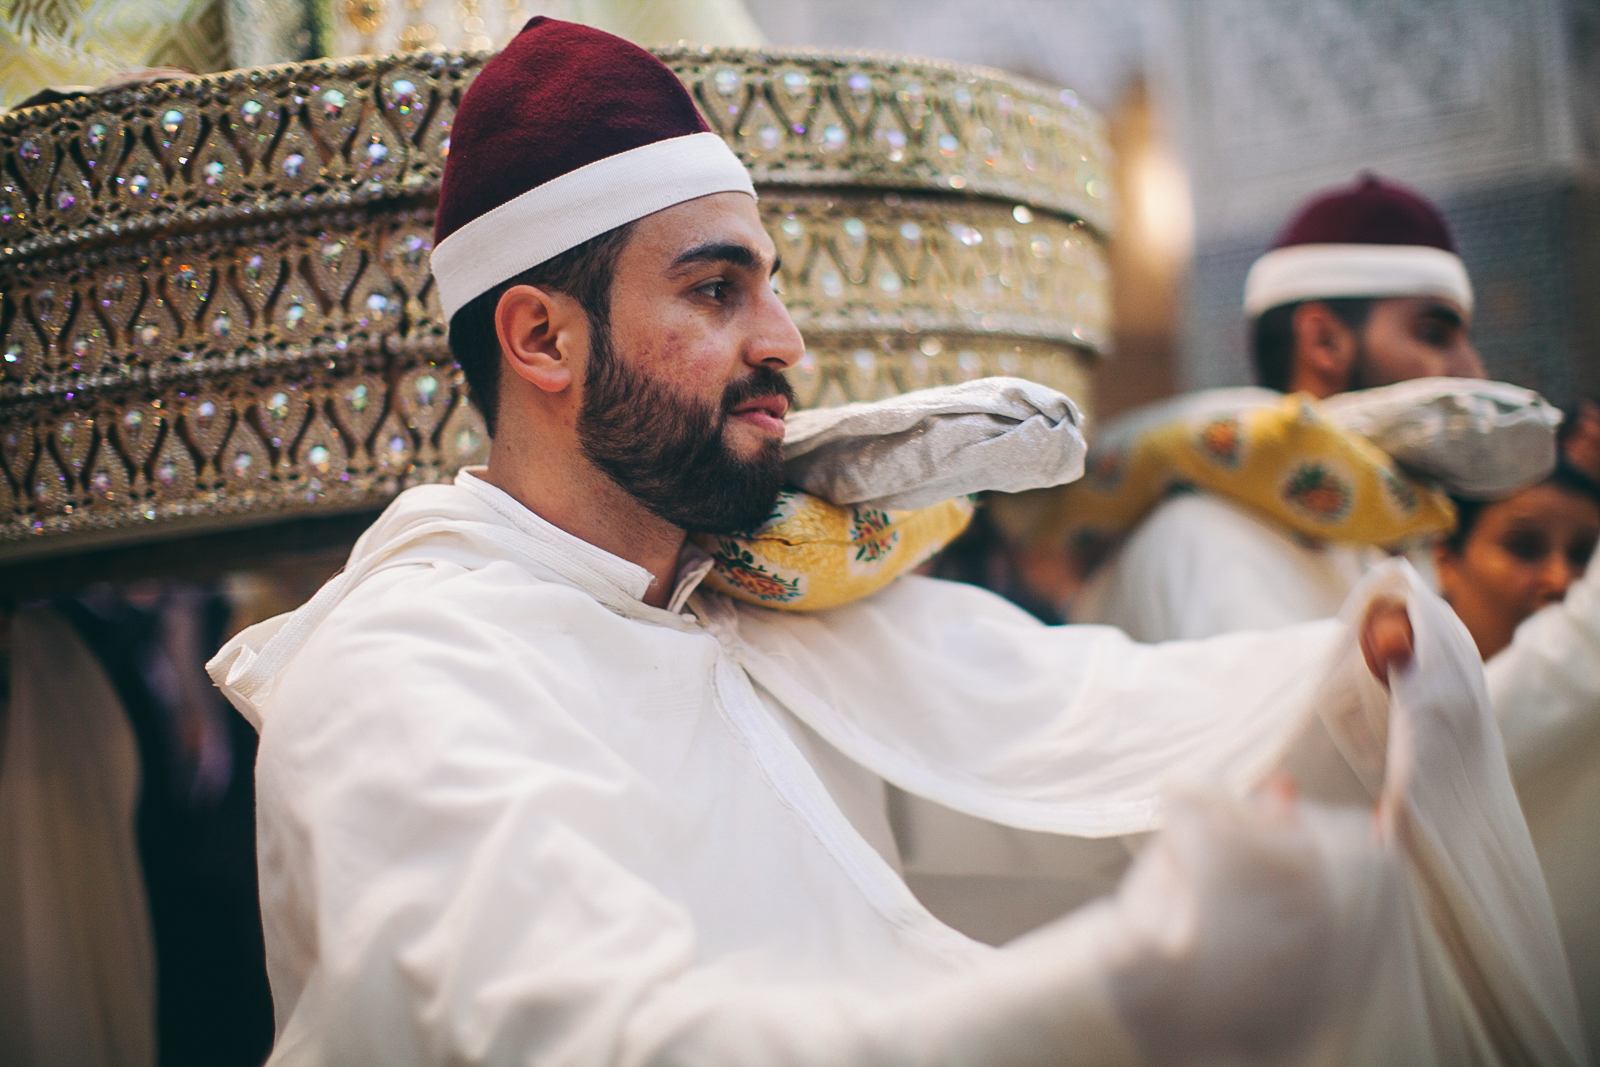 traditional_moroccan_wedding_photographry_casablanca_morocco_houda_vivek_ebony_siovhan_bokeh_photography_124.jpg